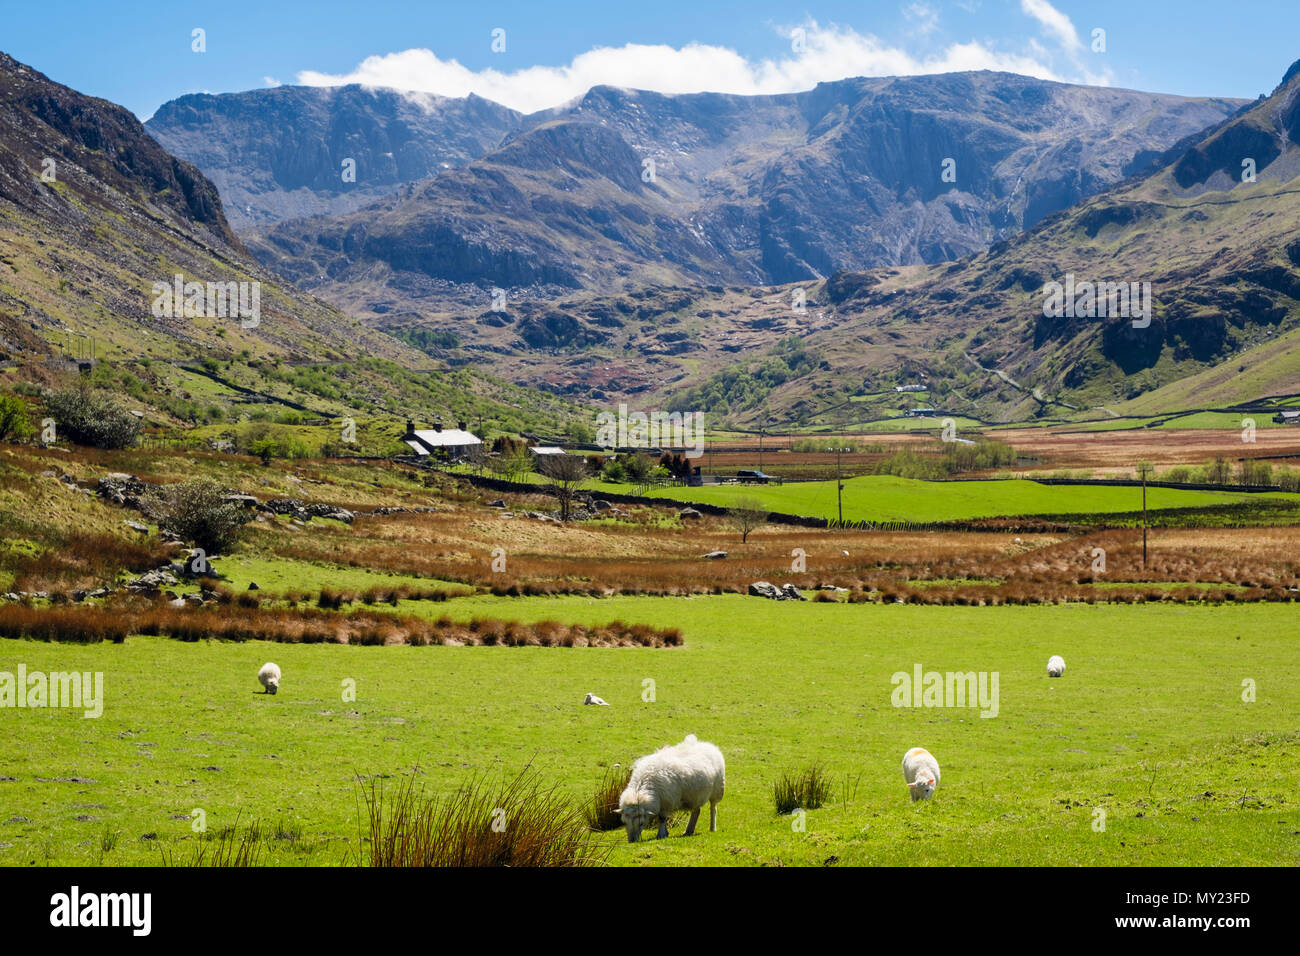 View up Nant Ffrancon valley to Glyderau mountains with sheep grazing in country fields in Snowdonia National Park. Ogwen, Bethesda, North Wales, UK - Stock Image